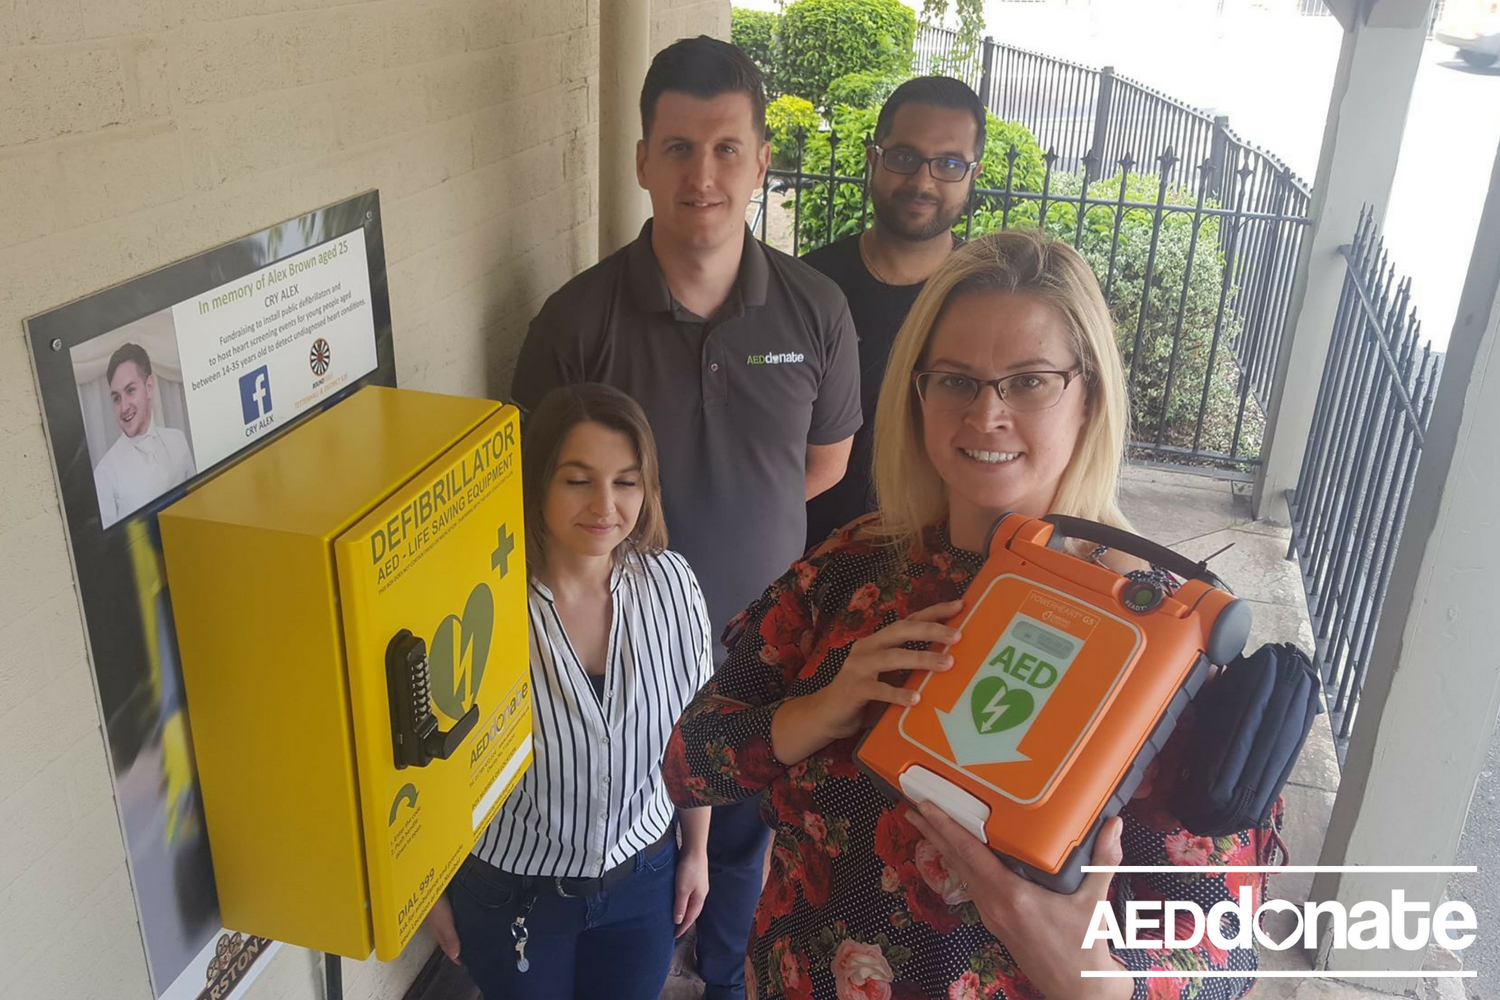 'I'm doing this for Alex's legacy': Sister Rachel unveils second Tettenhall defibrillator